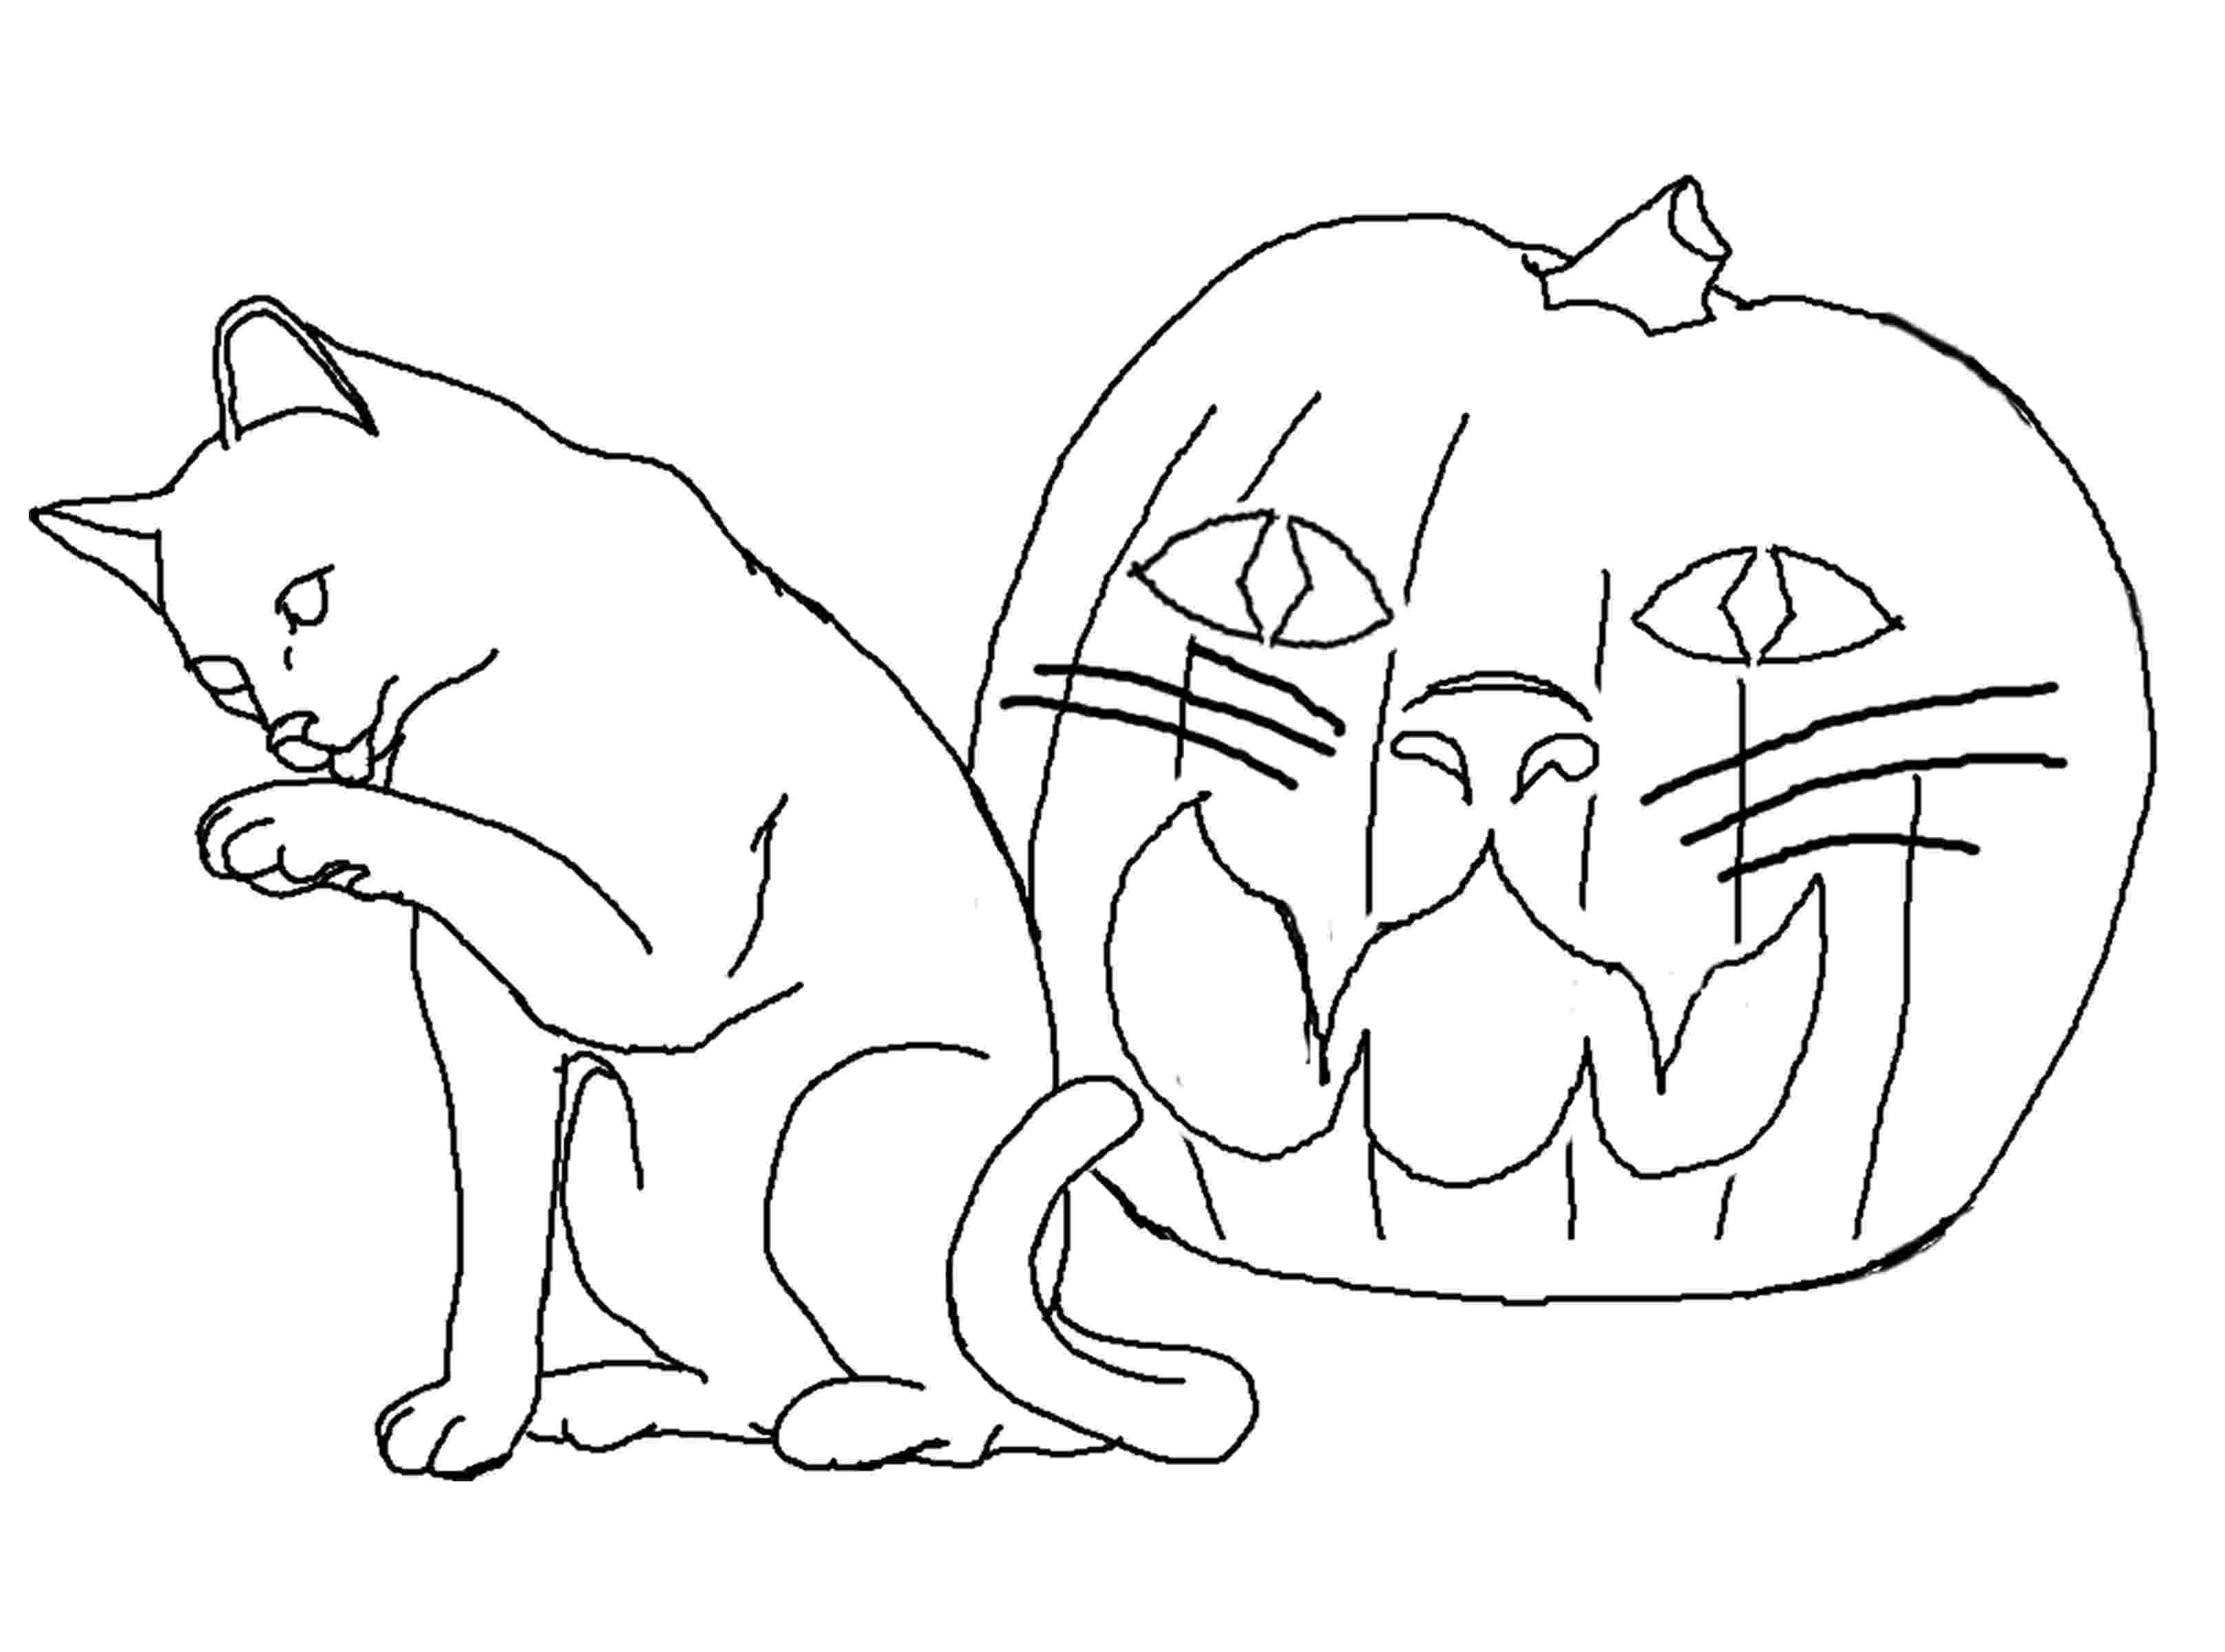 cat color pages free printable cat coloring pages for kids color pages cat 1 1